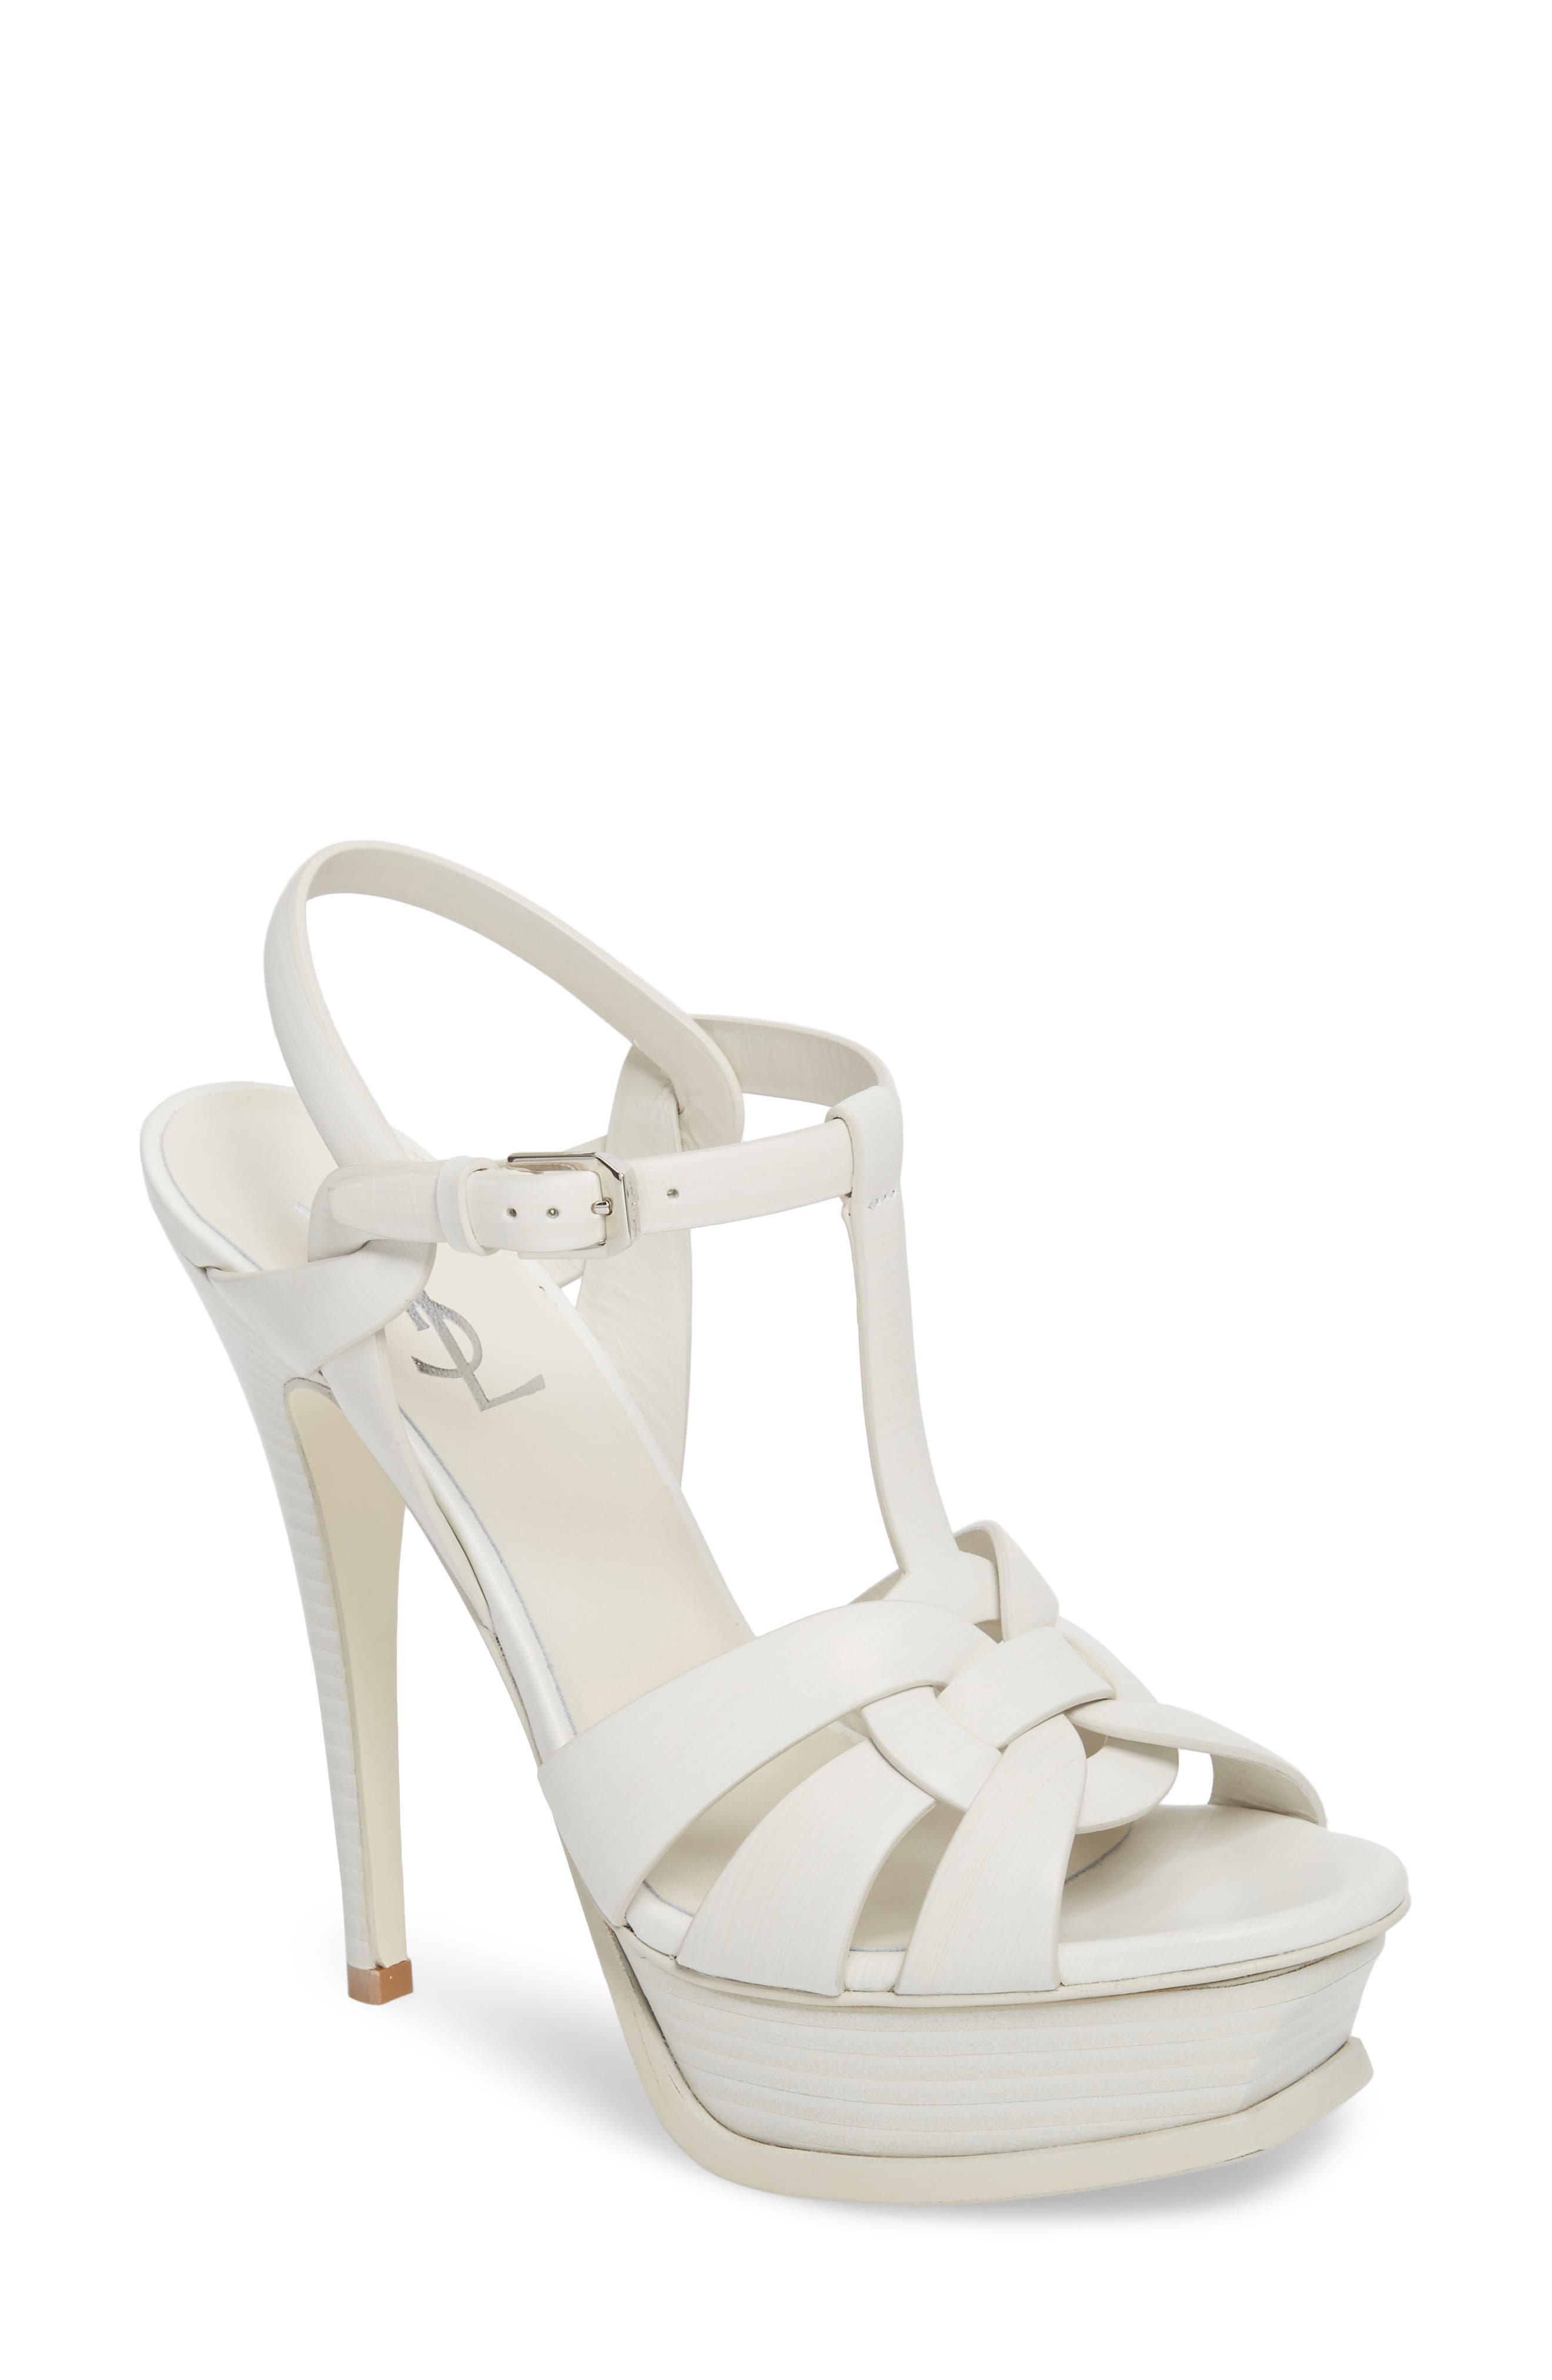 'Tribute' Sandal,                         Main,                         color, PORCELLANA